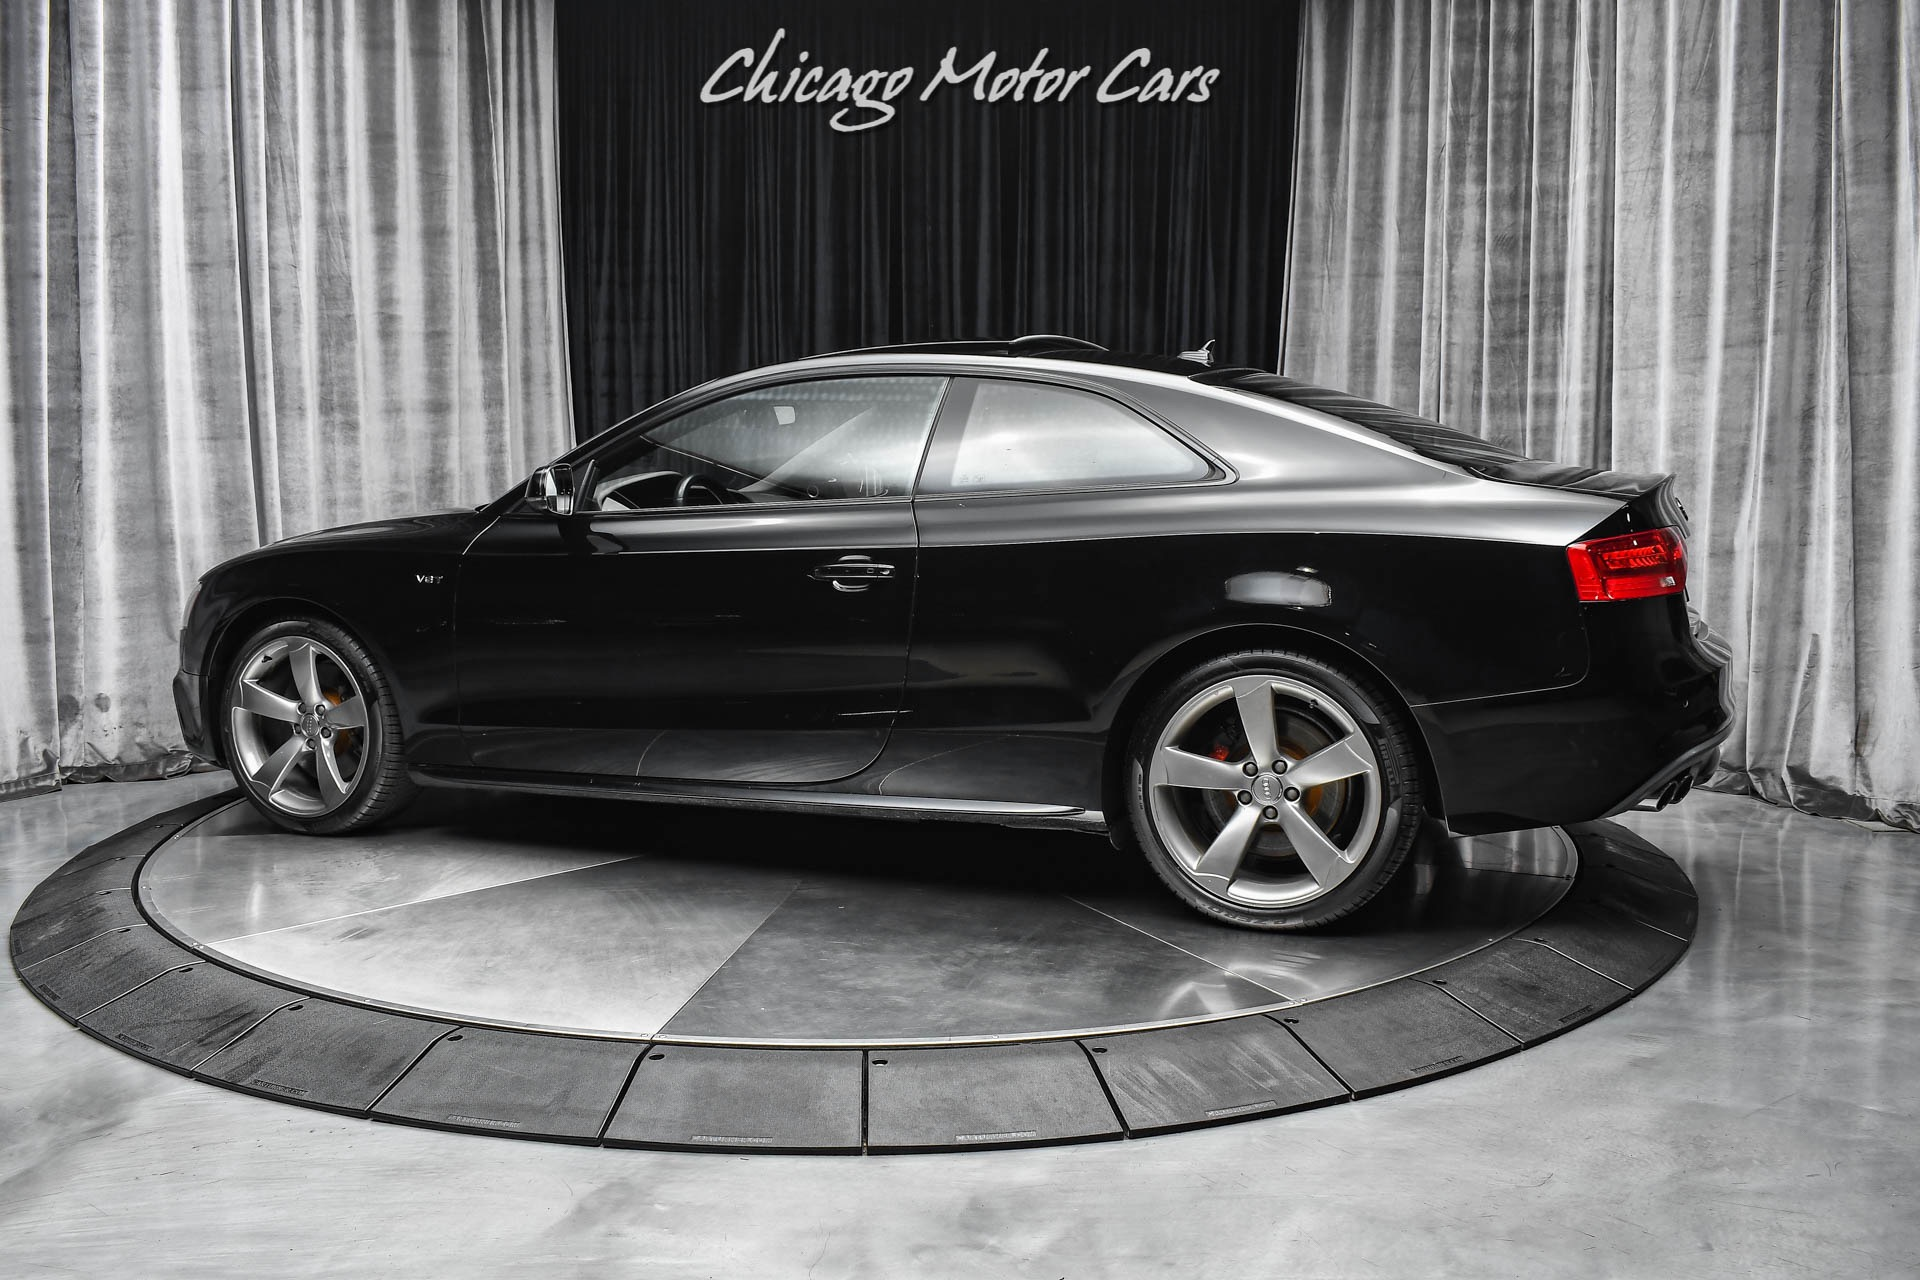 Used-2017-Audi-S5-30T-quattro-63kMSRP-Technology-Package-Carbon-Inlays